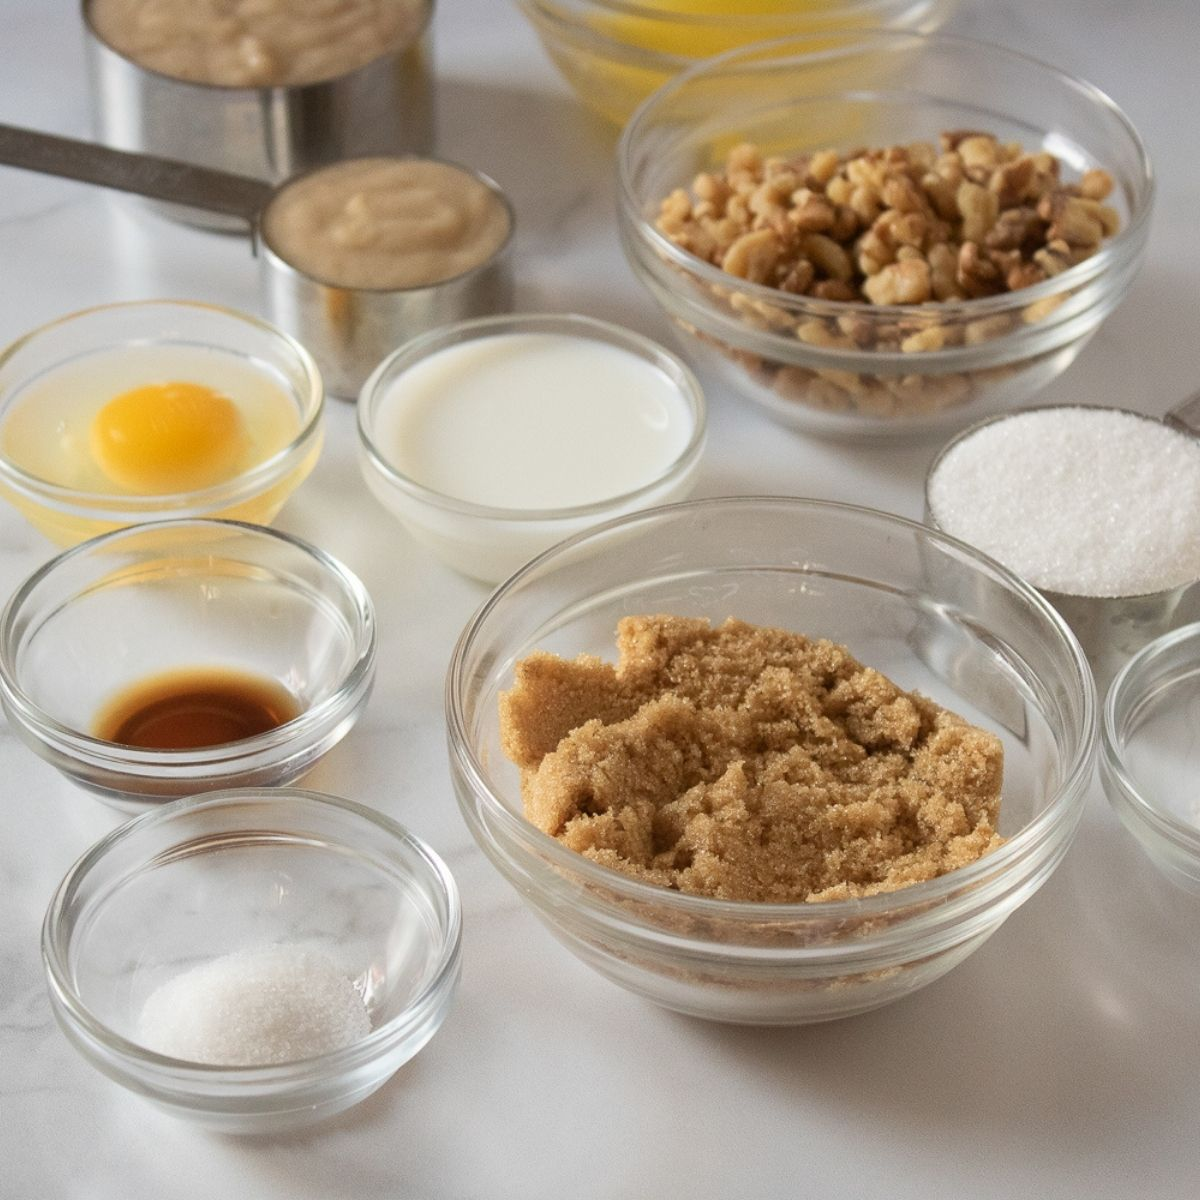 Nutty Banana Muffin Ingredients